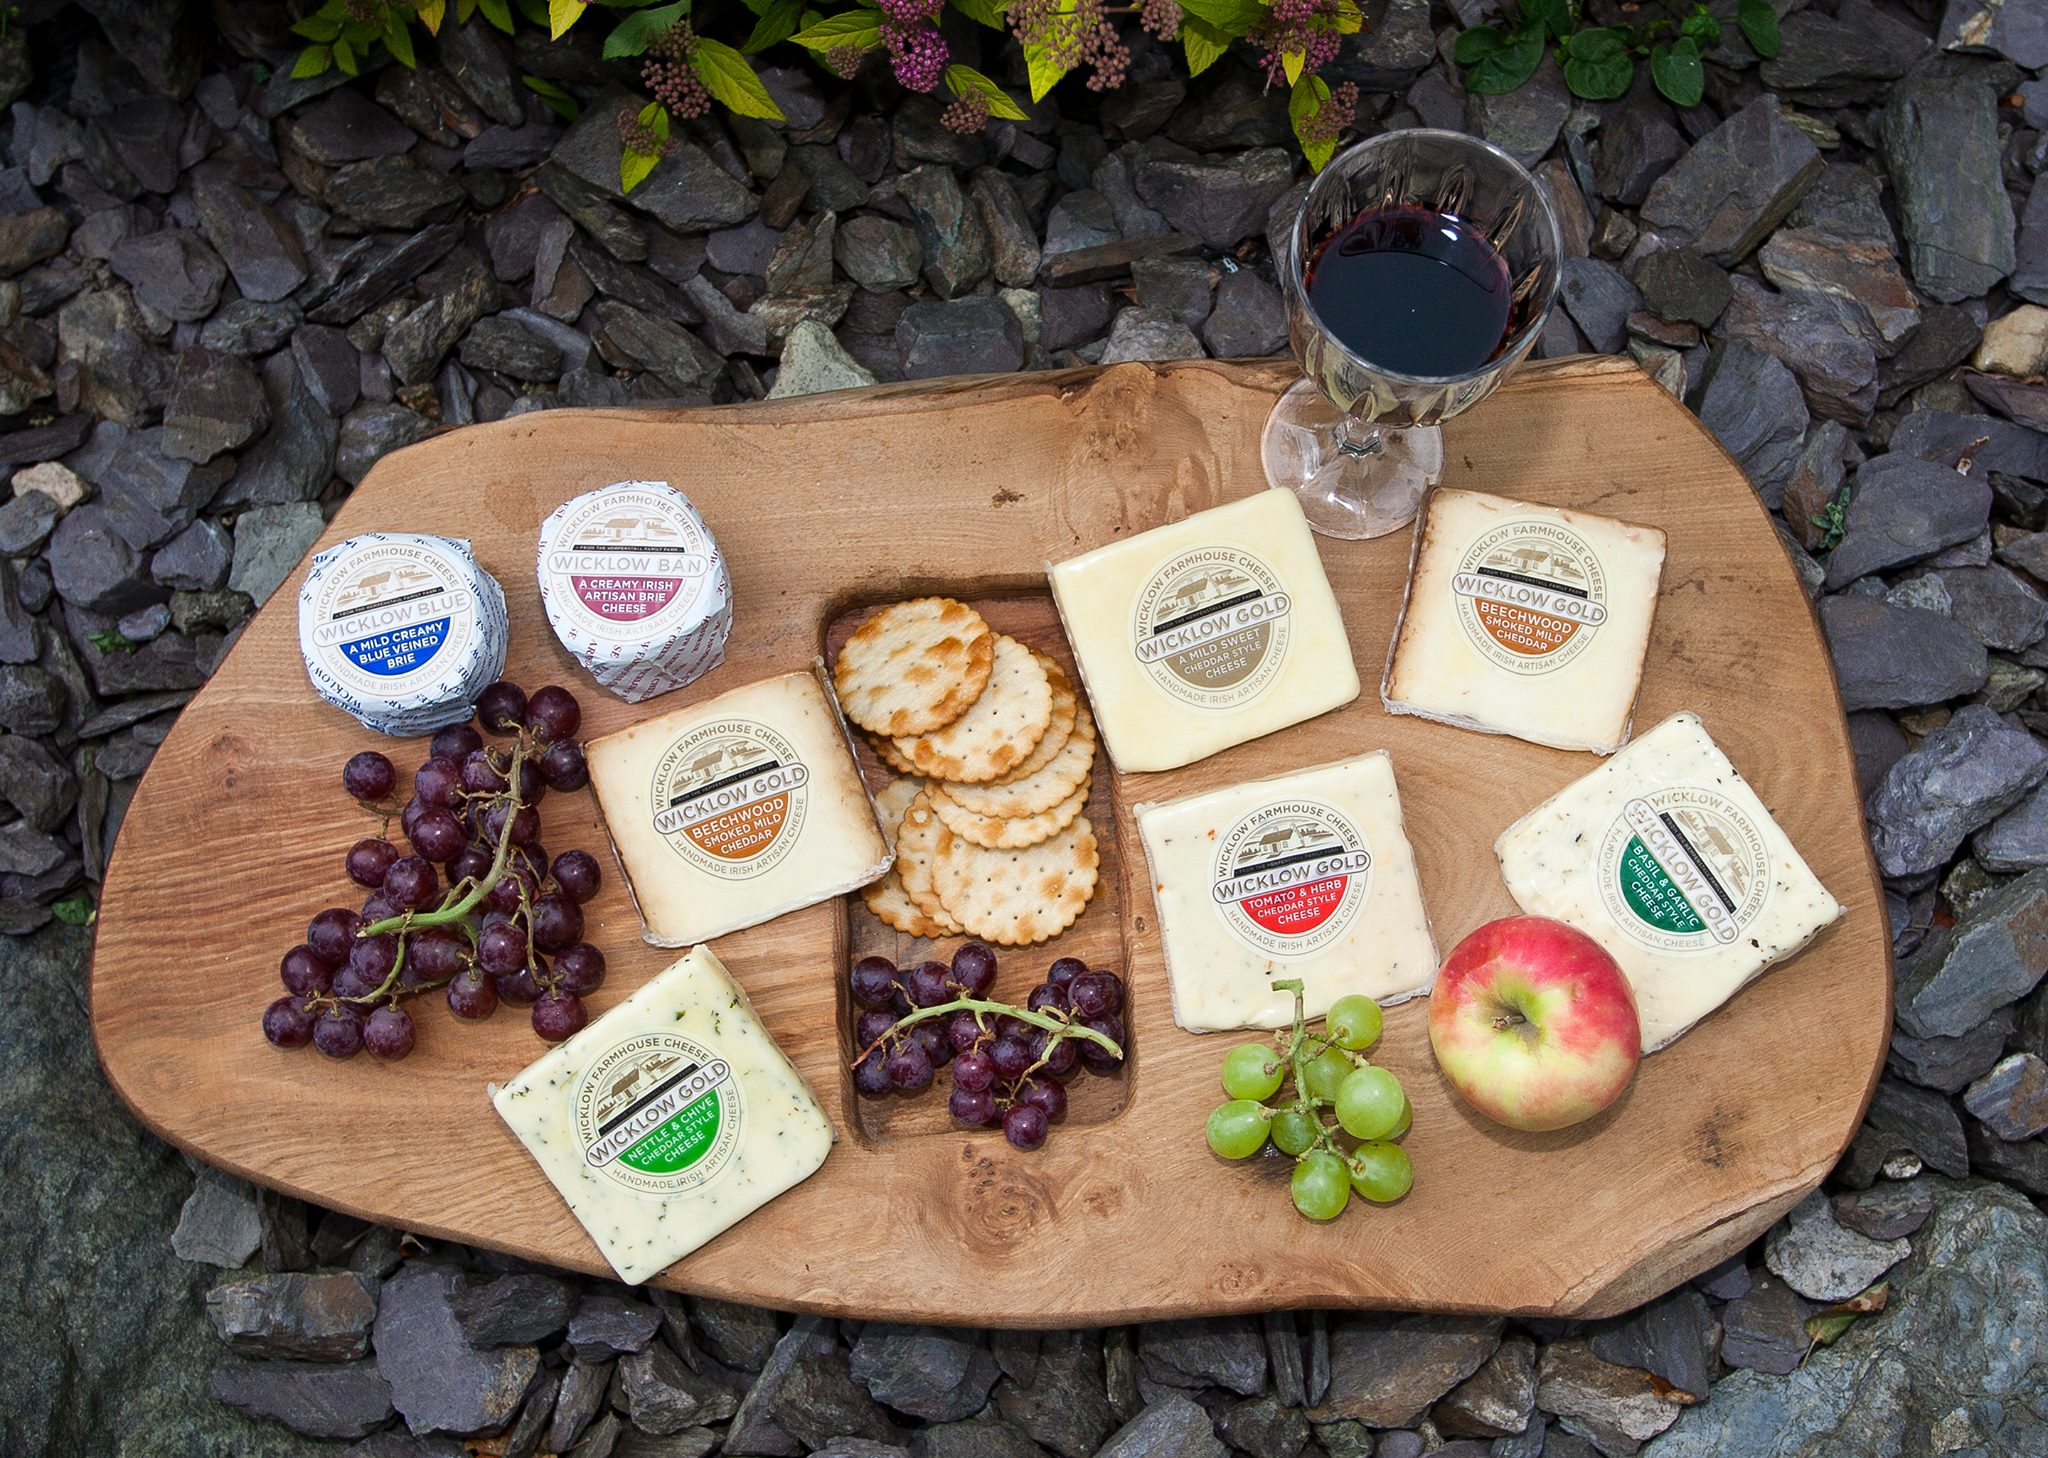 Wicklow Farmhouse Cheese - proud to be a member of Wicklow Naturally